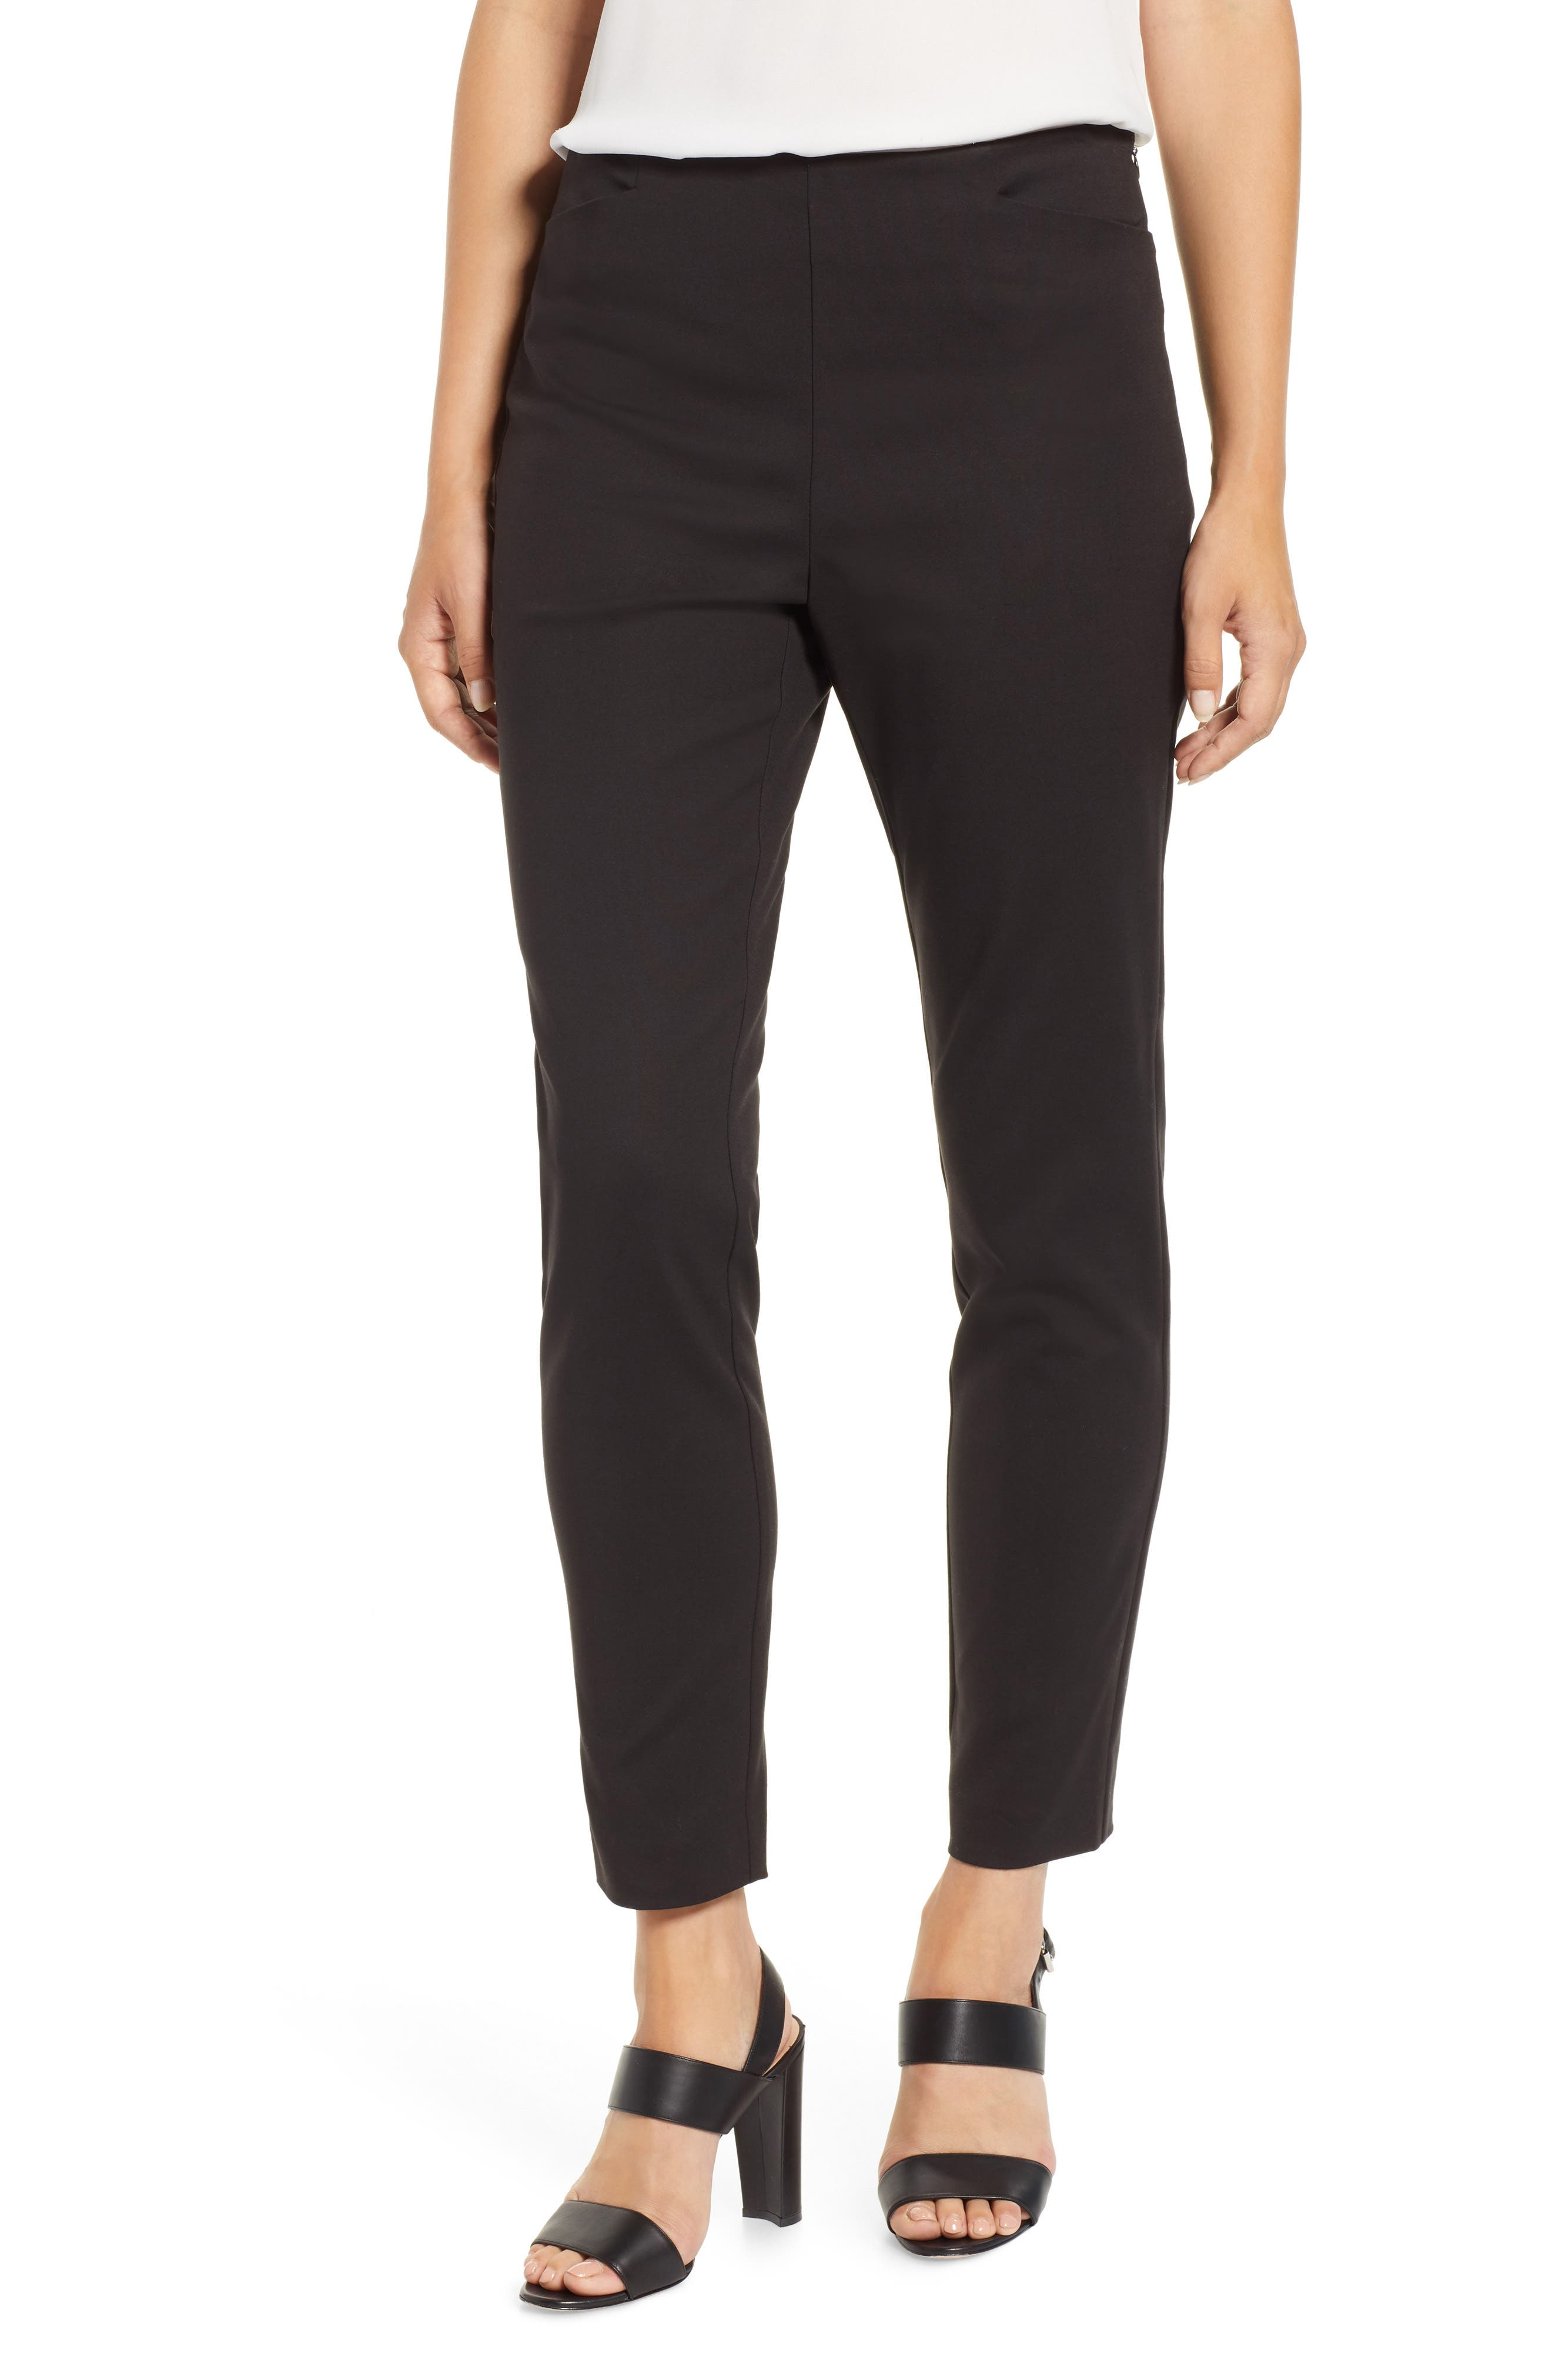 VINCE CAMUTO, Side Zip Stretch Cotton Blend Pants, Main thumbnail 1, color, RICH BLACK